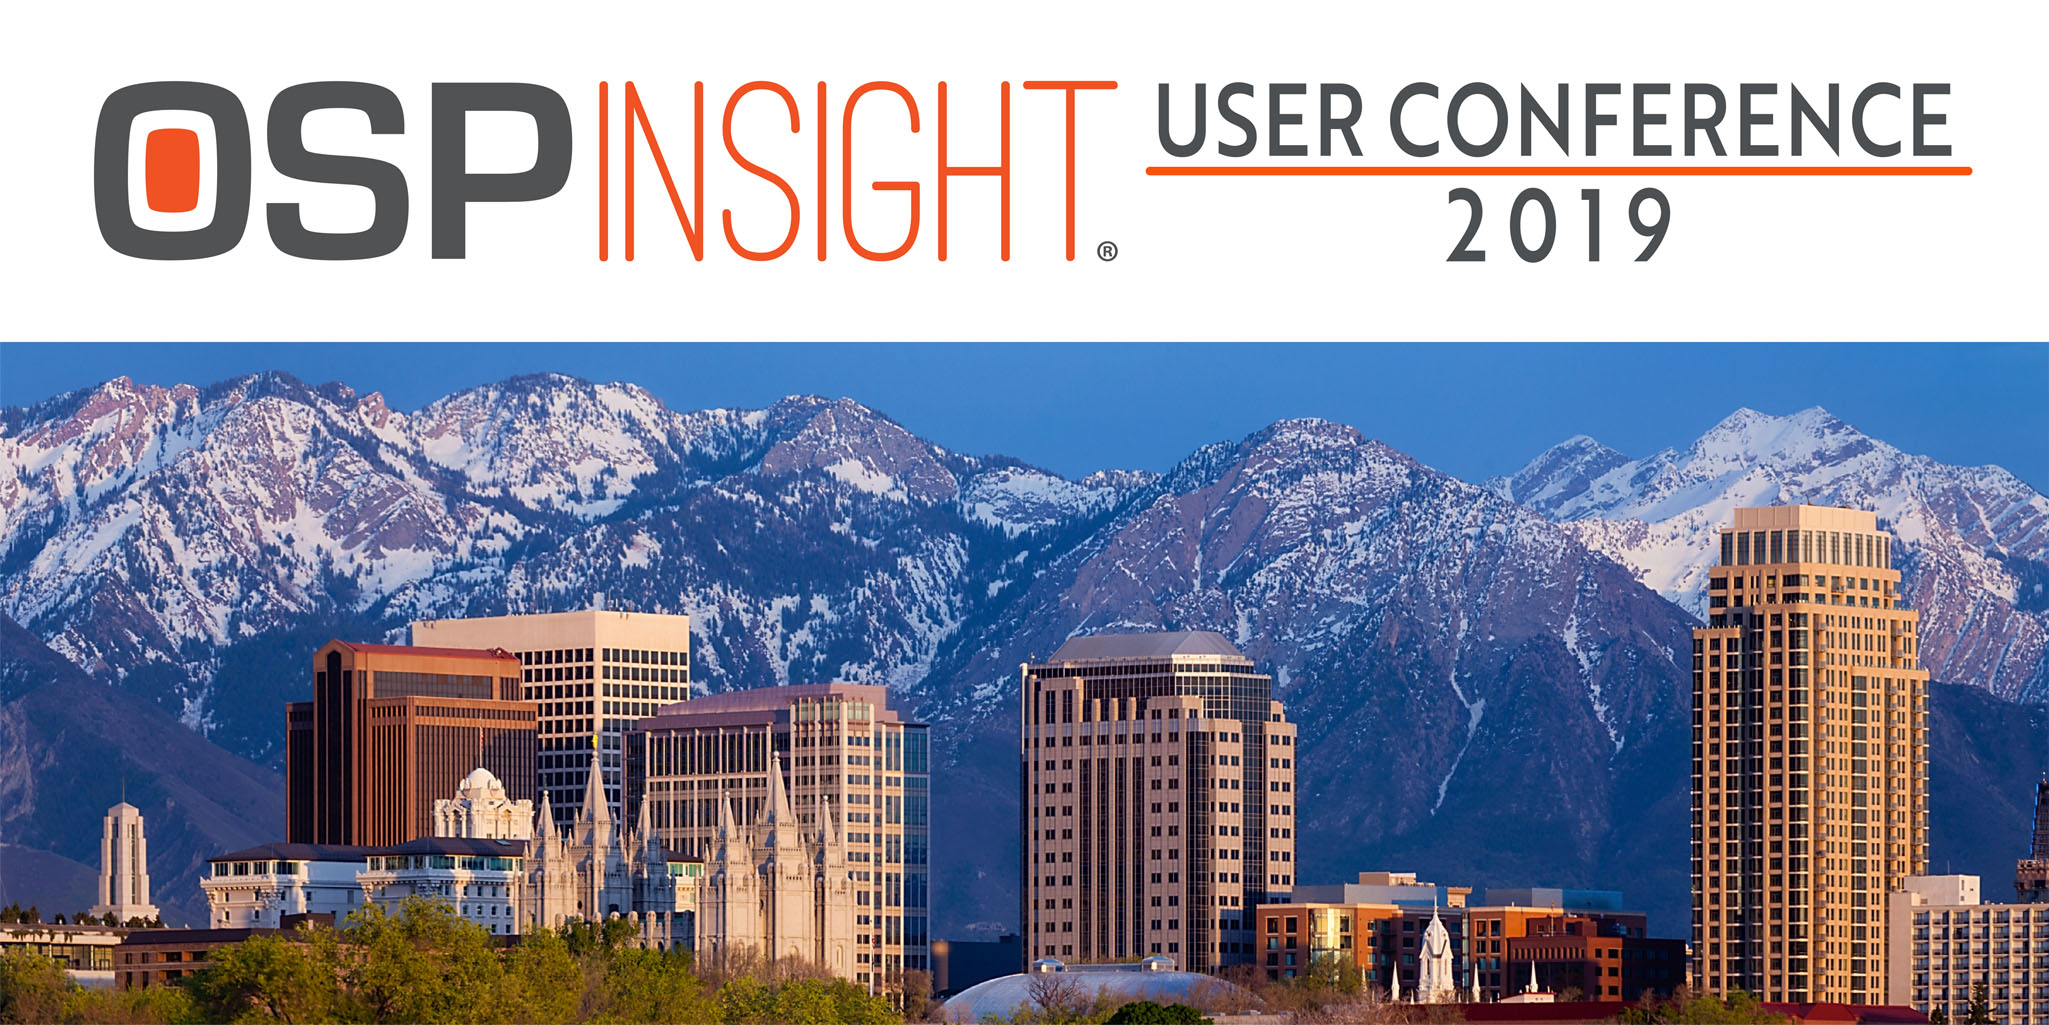 OSPInsight User Conference 2019